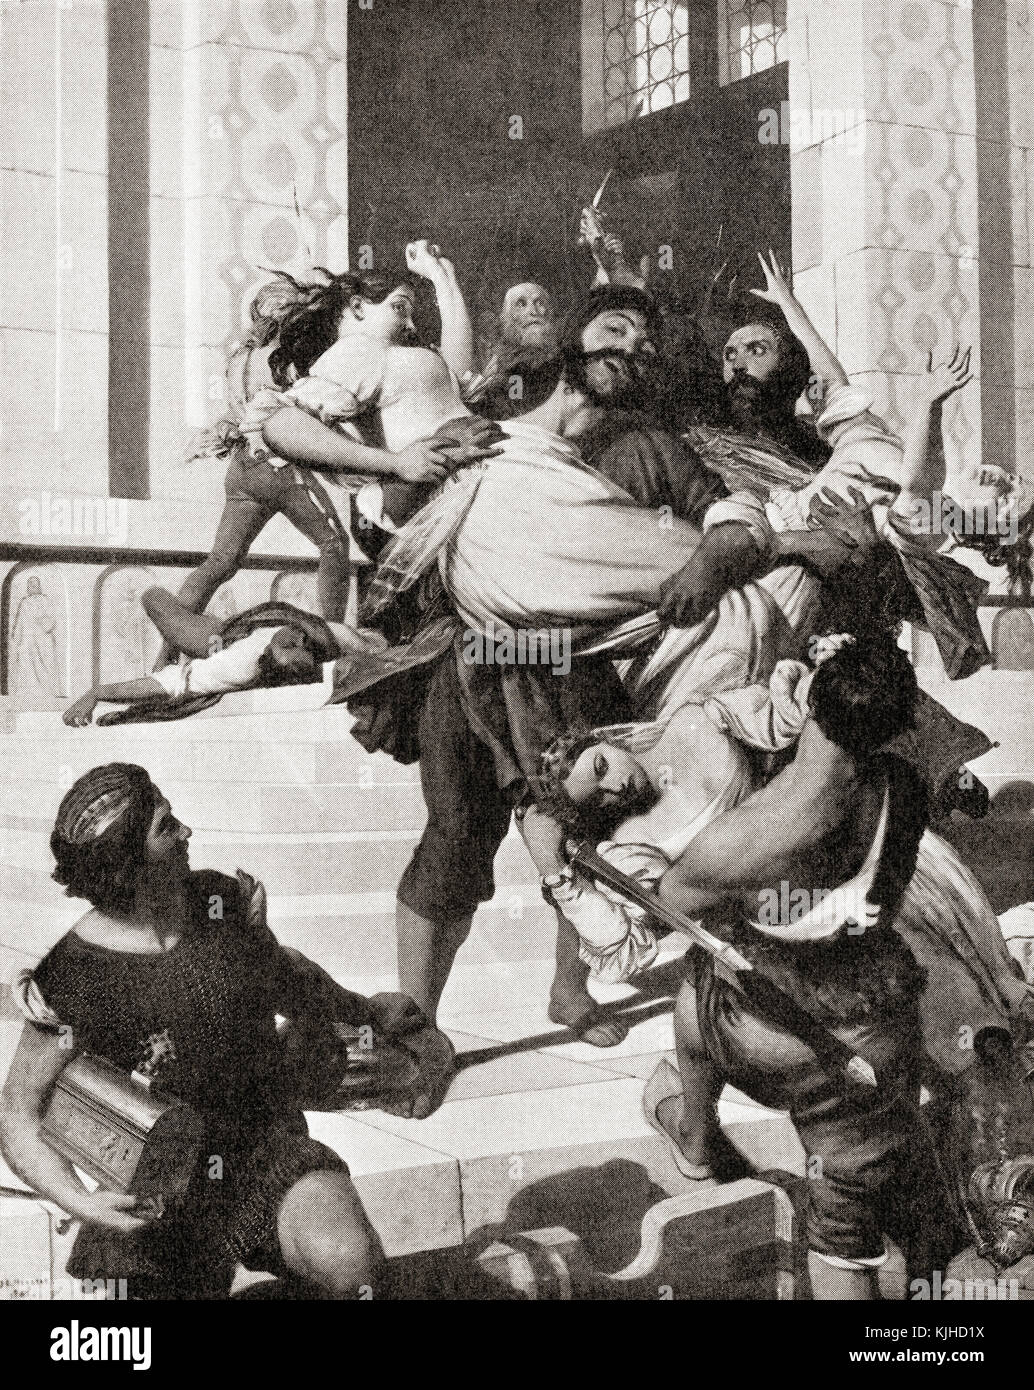 Istrian pirates carrying off Venetian brides, c. 800AD.  From Hutchinson's History of the Nations, published - Stock Image